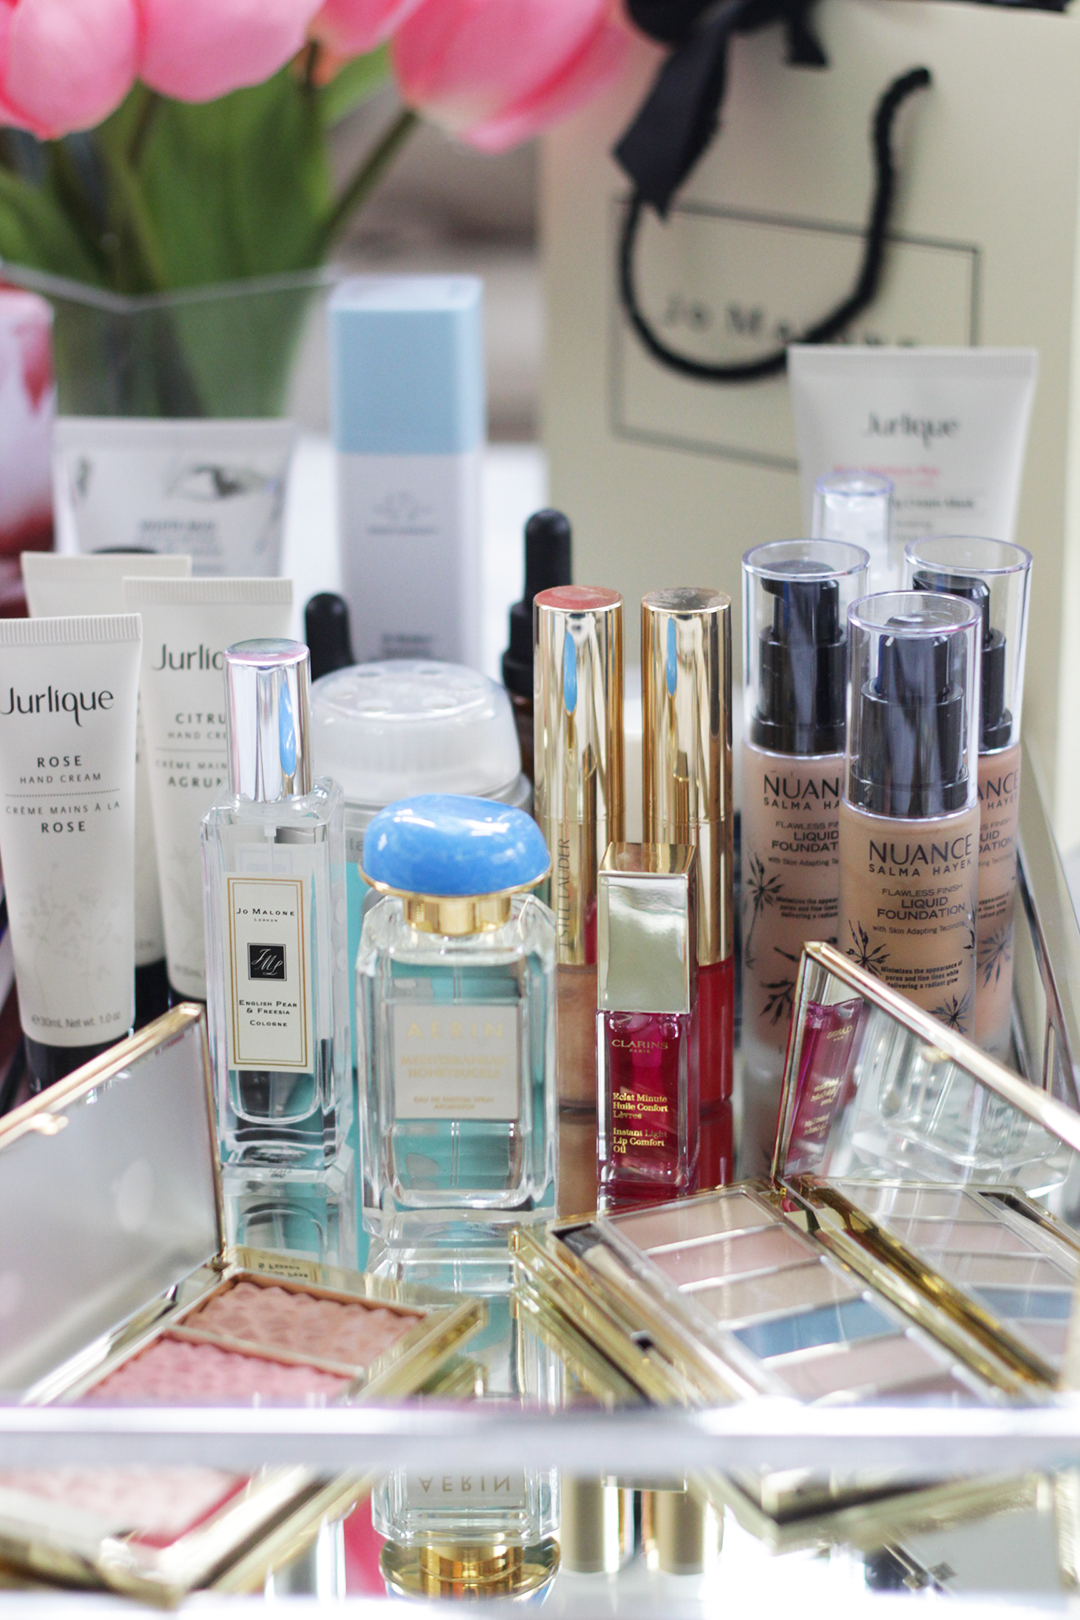 Curious what to get mom this Mother's Day? Check out these Mother's Day Beauty Gift Ideas. Featuring Jo Malone, AERIN, Estee Lauder and much more, see what gifts this year will make Mom swoon. - Makeup Life and Love- Mother's Day Beauty- Mother's Day